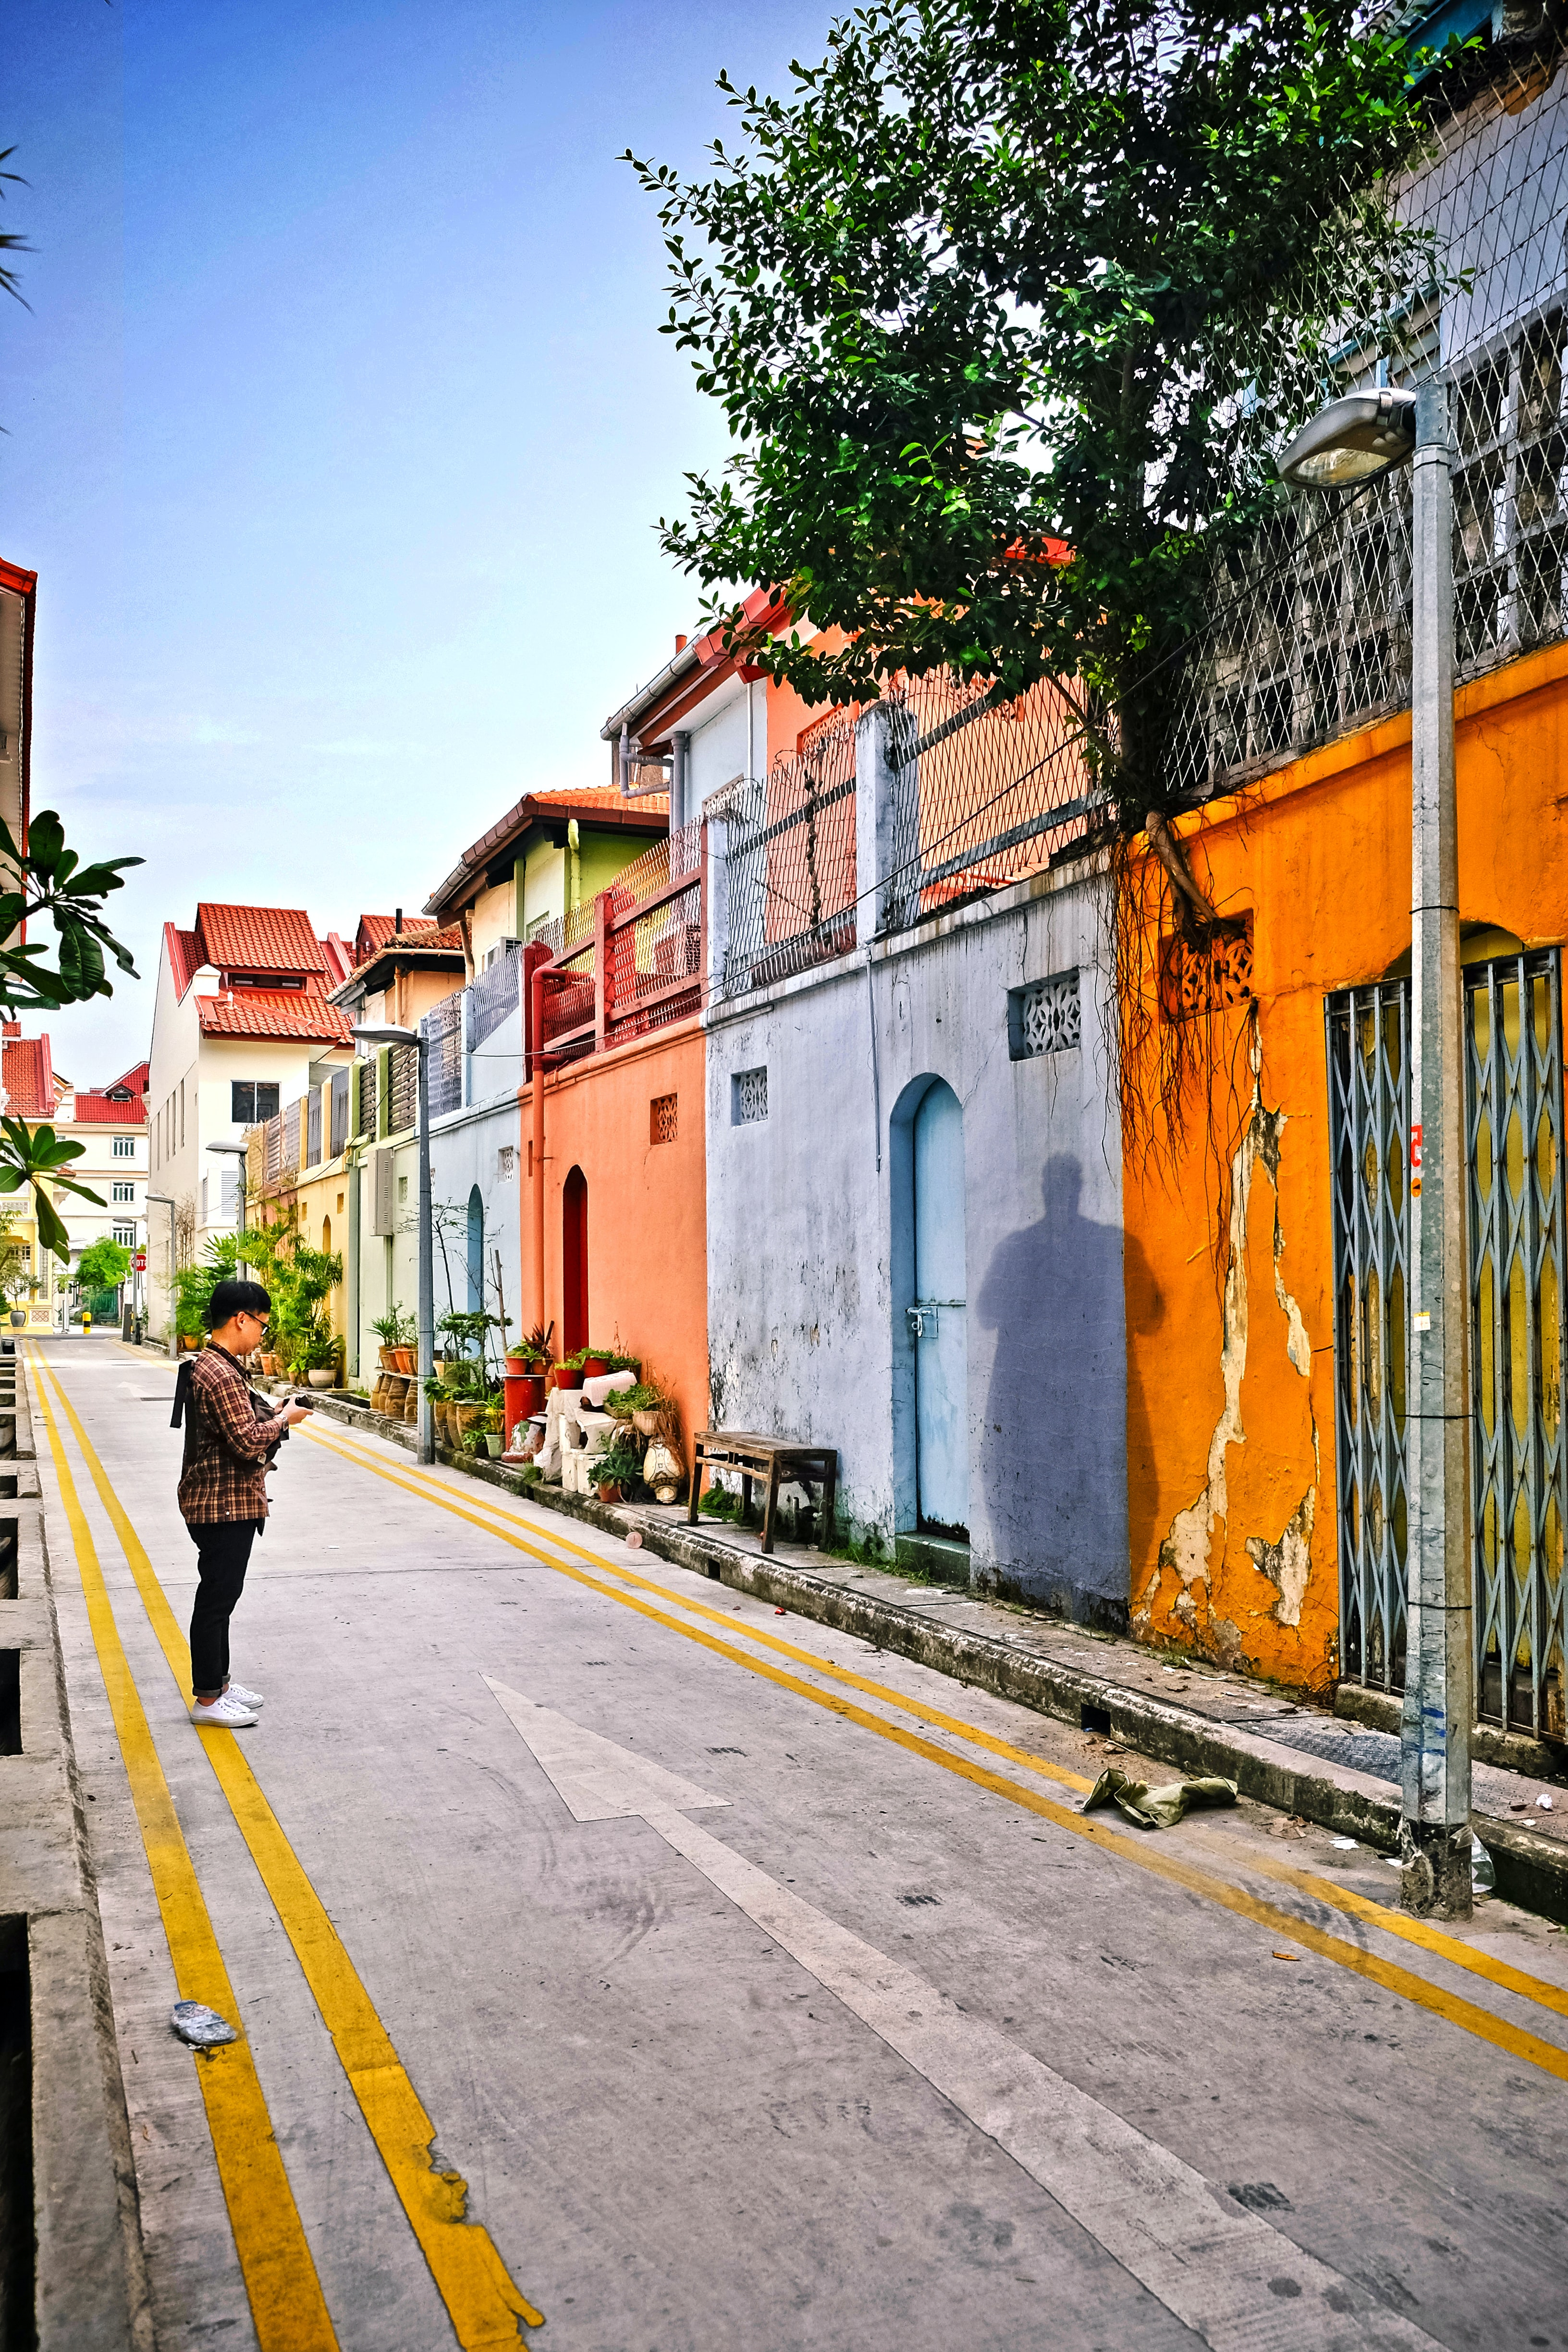 Street view of colorful Asian houses and a man in the street taking pictures